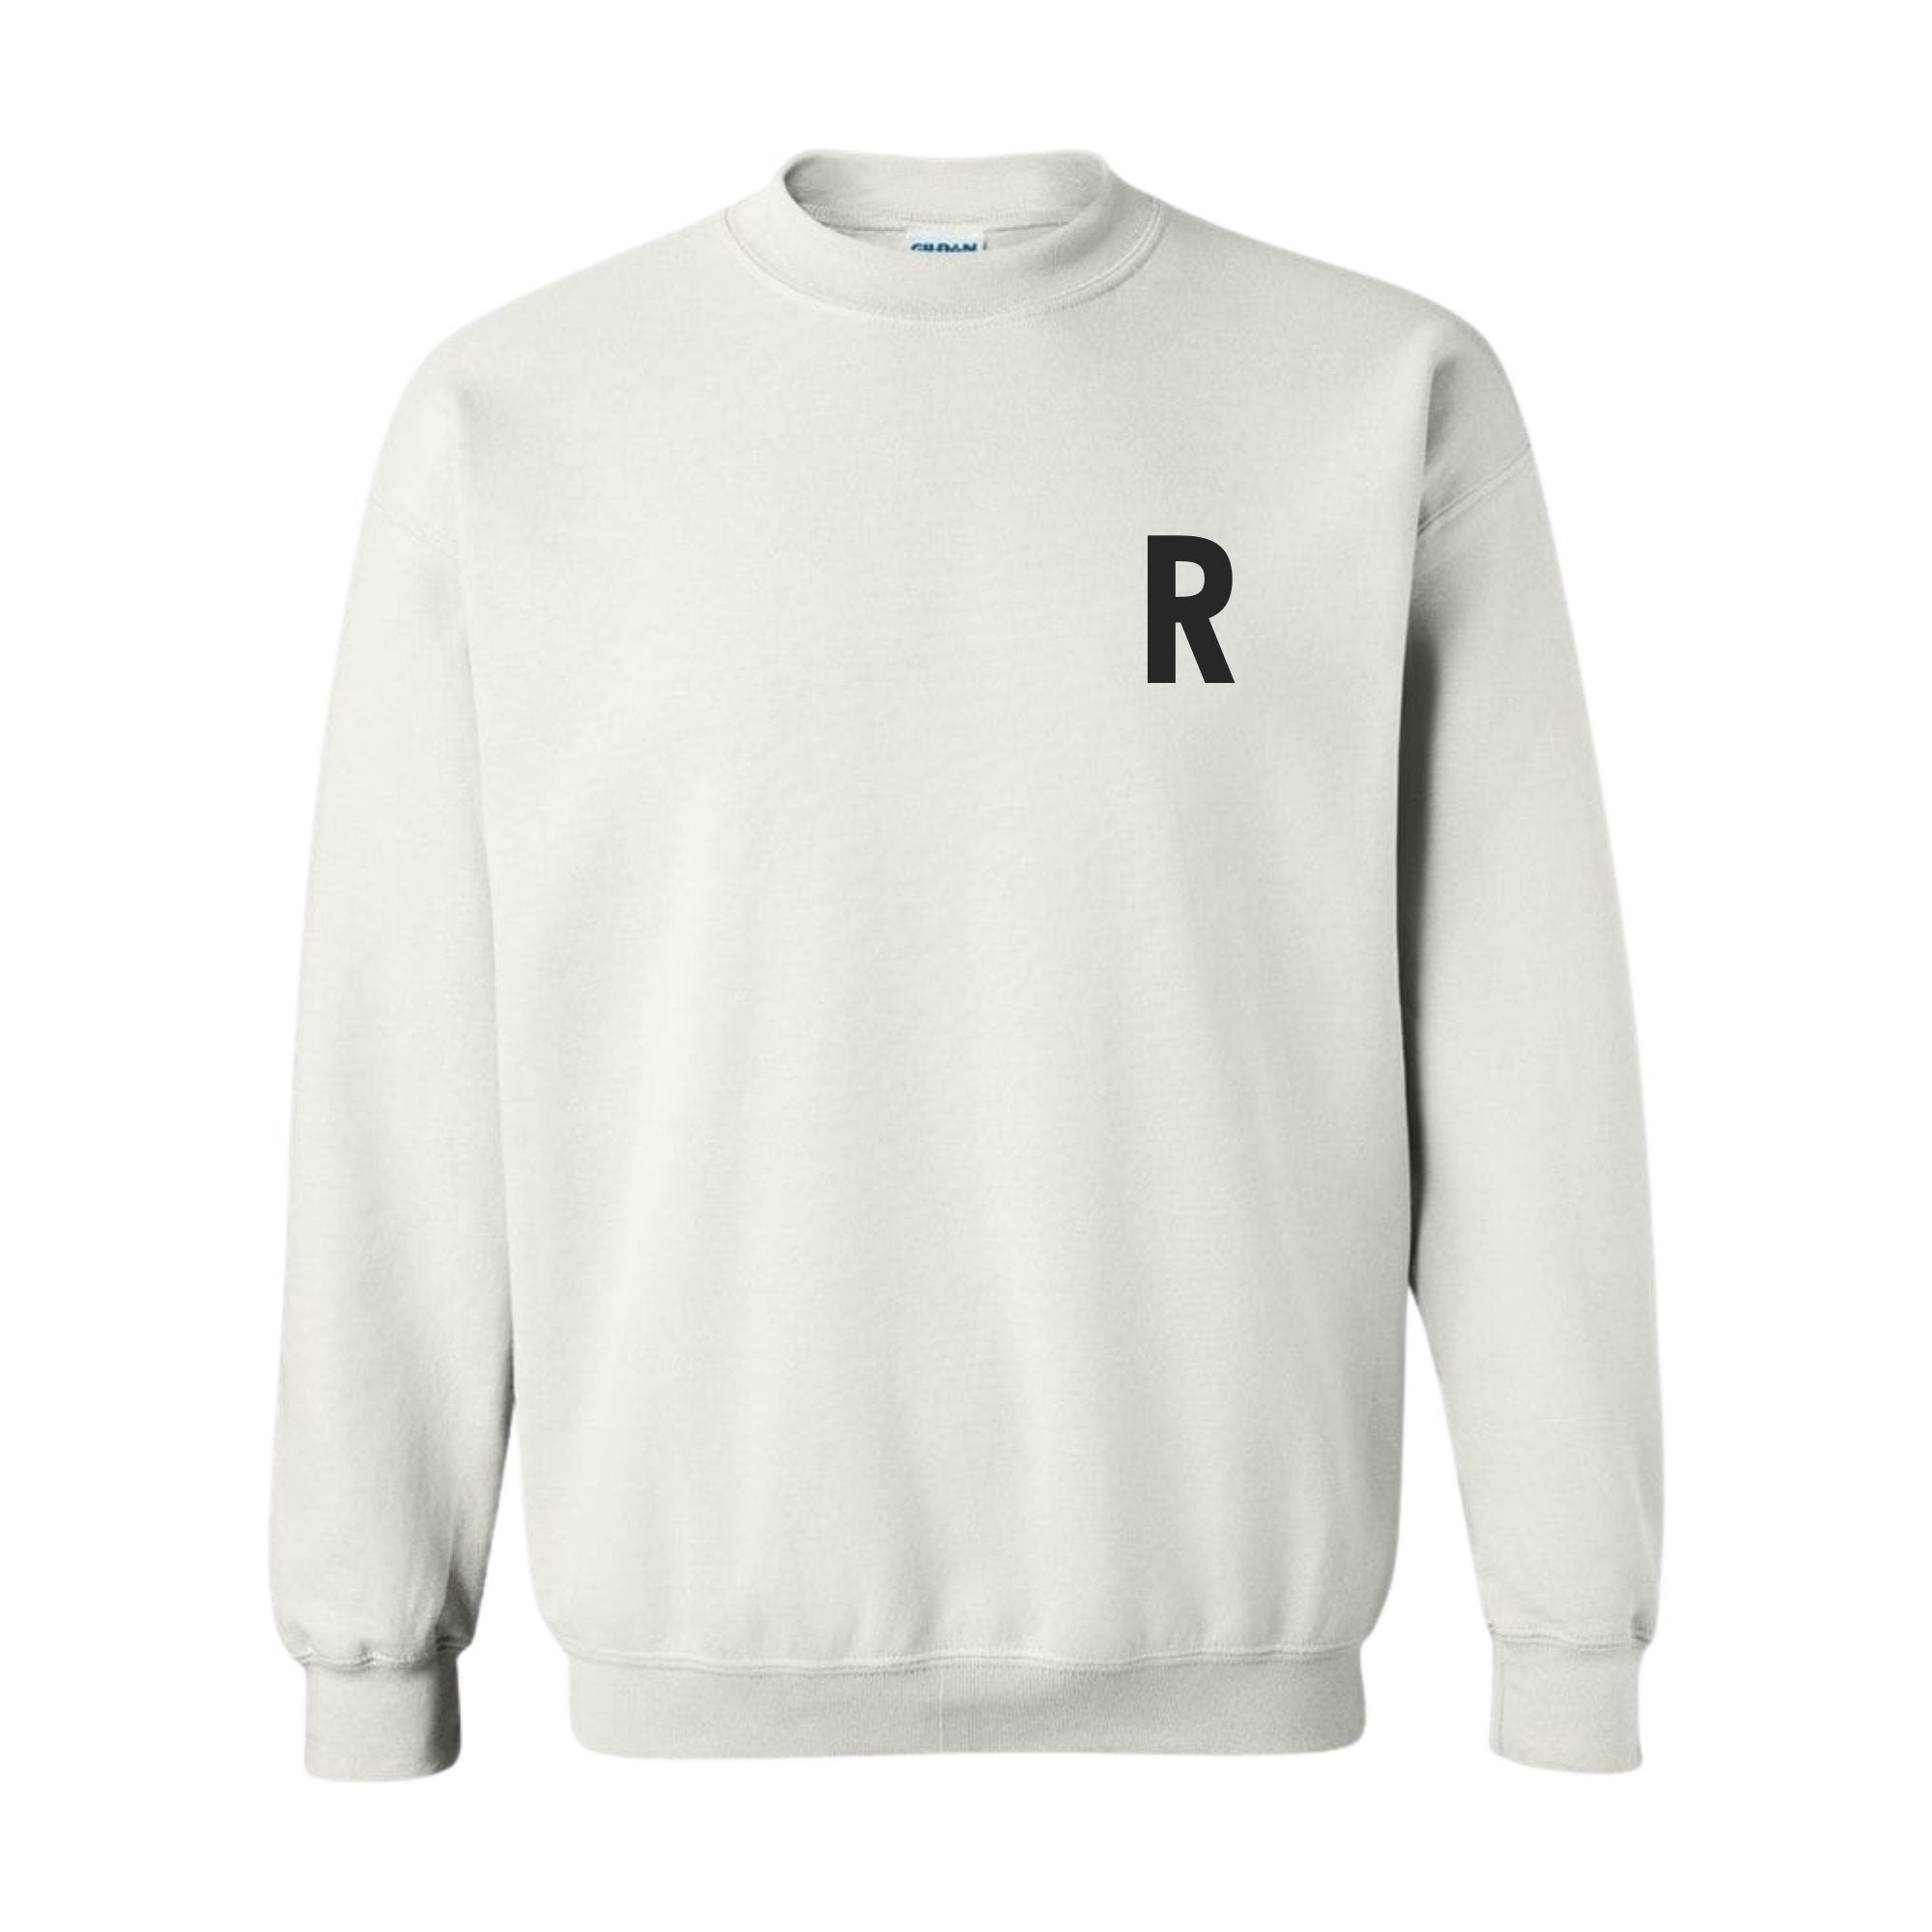 Monogram Sweatshirt - White